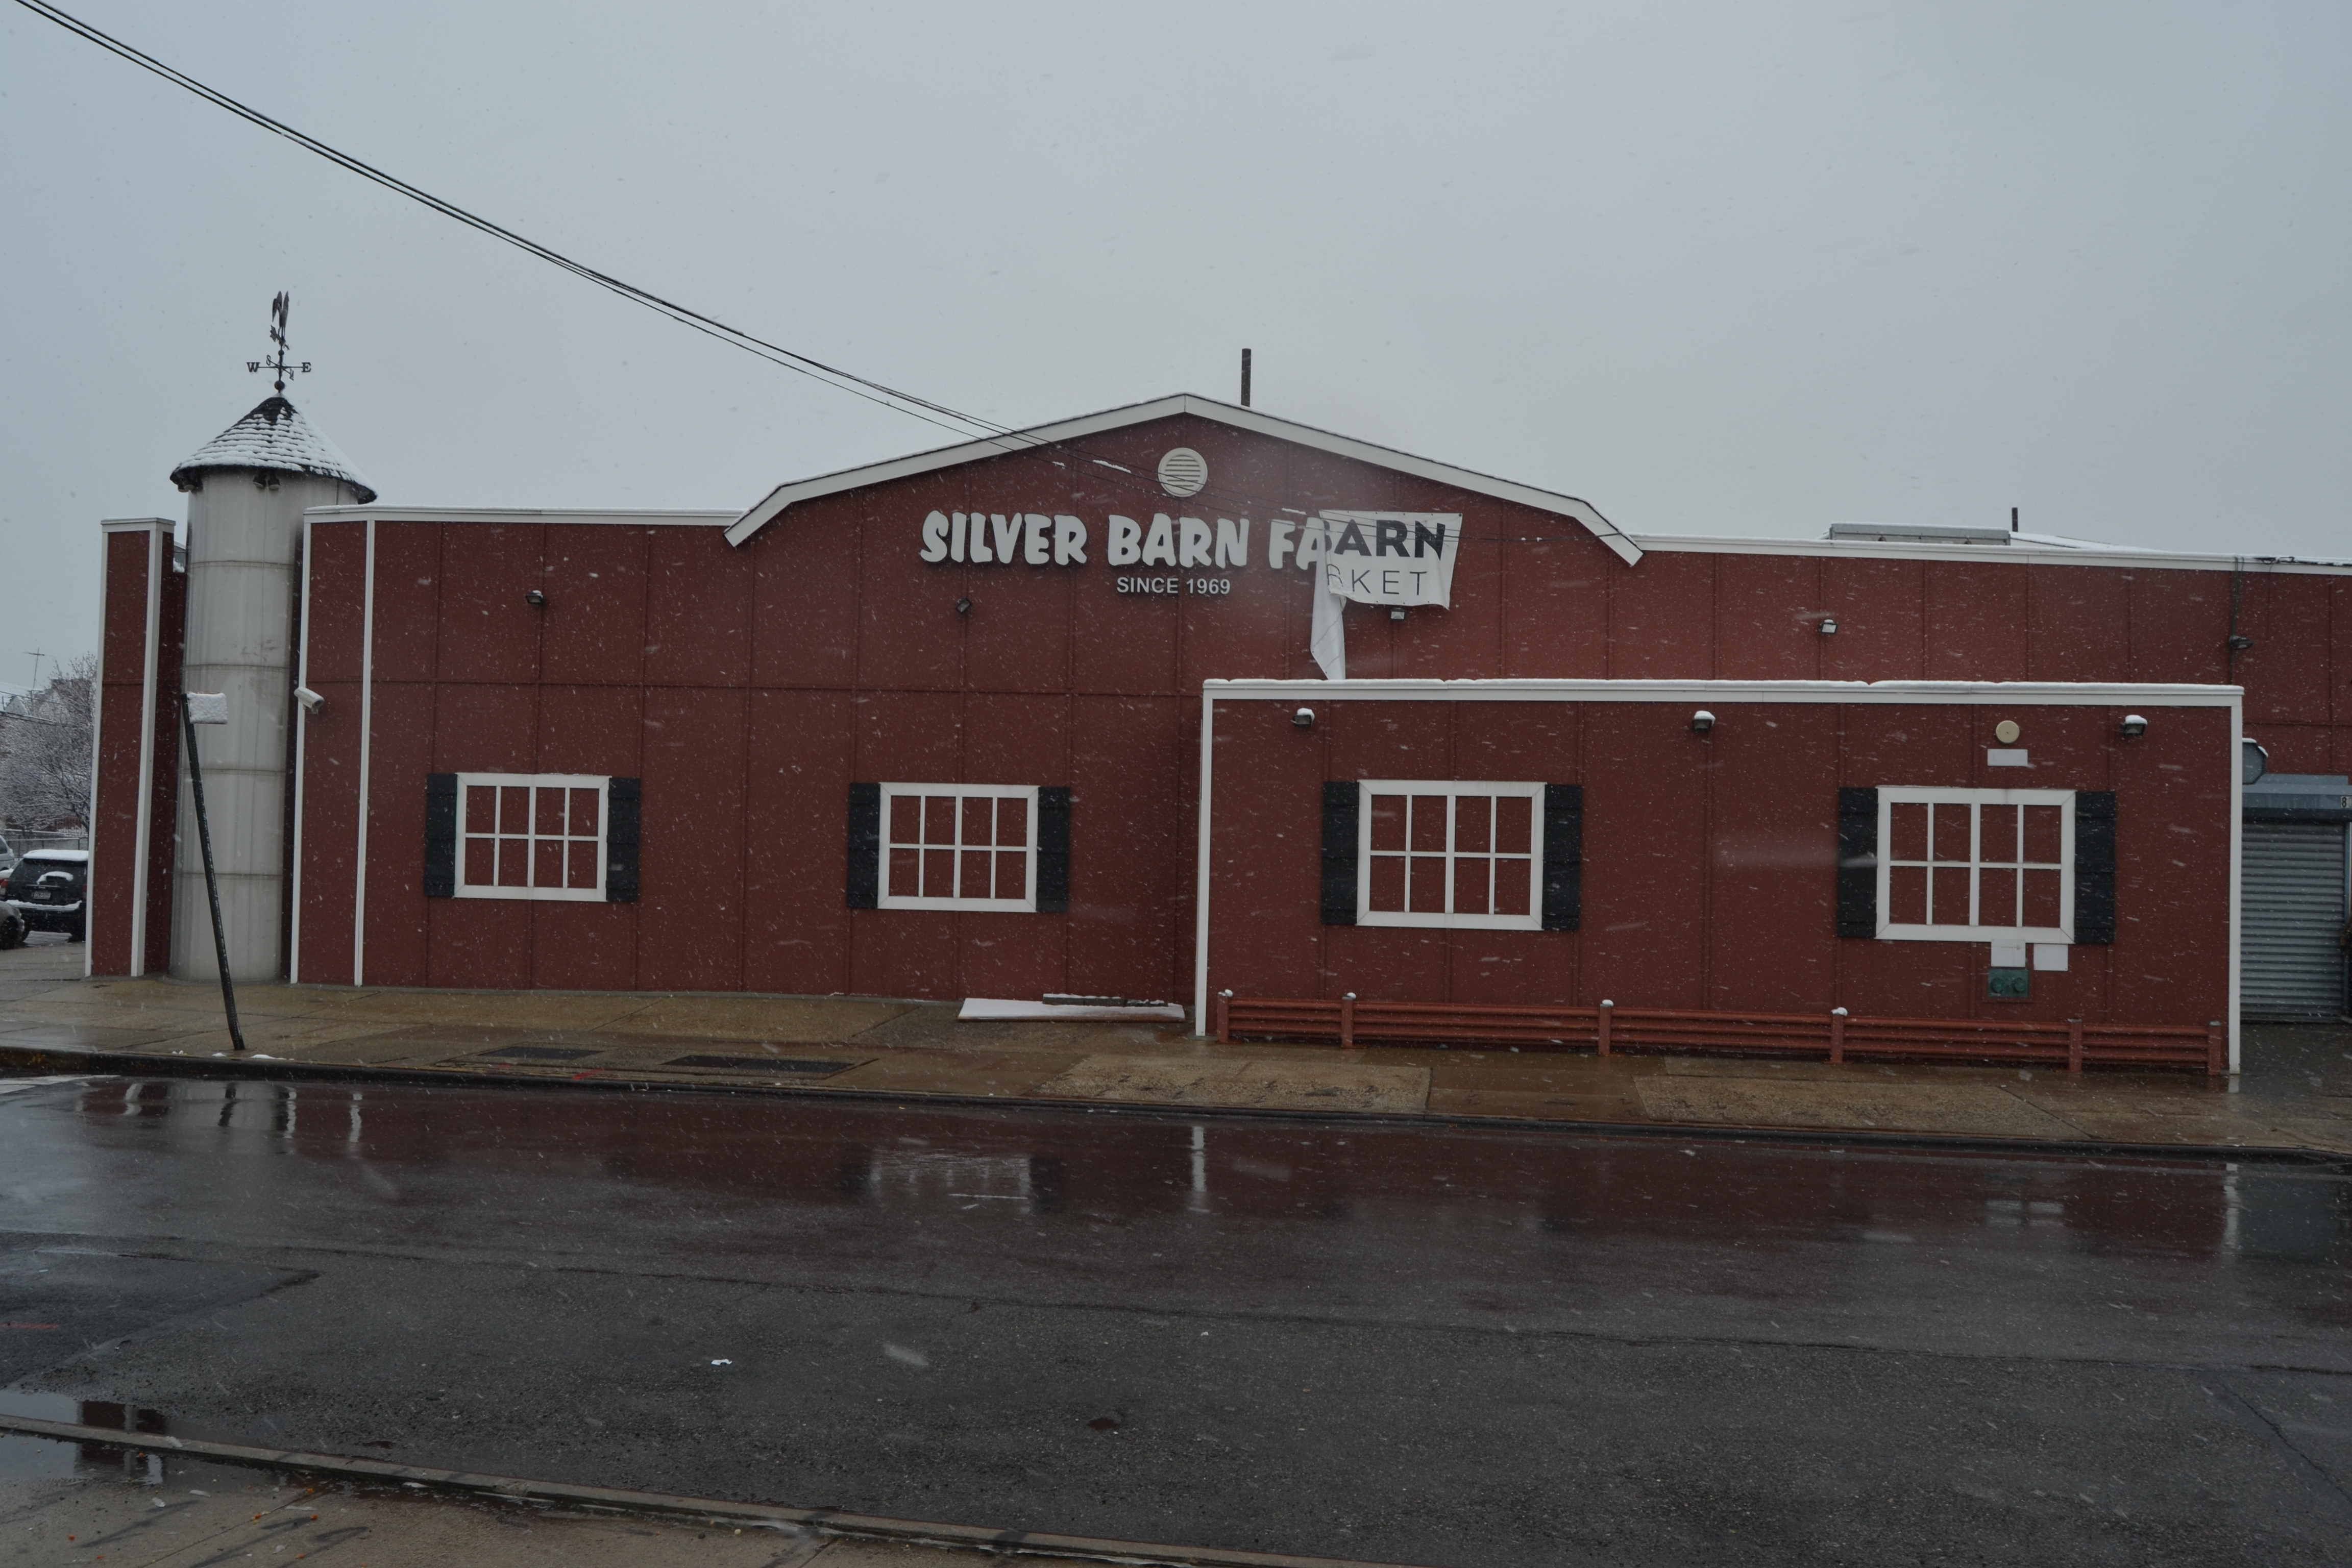 EXCLUSIVE: Get a look at renovations to former Silver Barn Farms supermarket in Middle Village